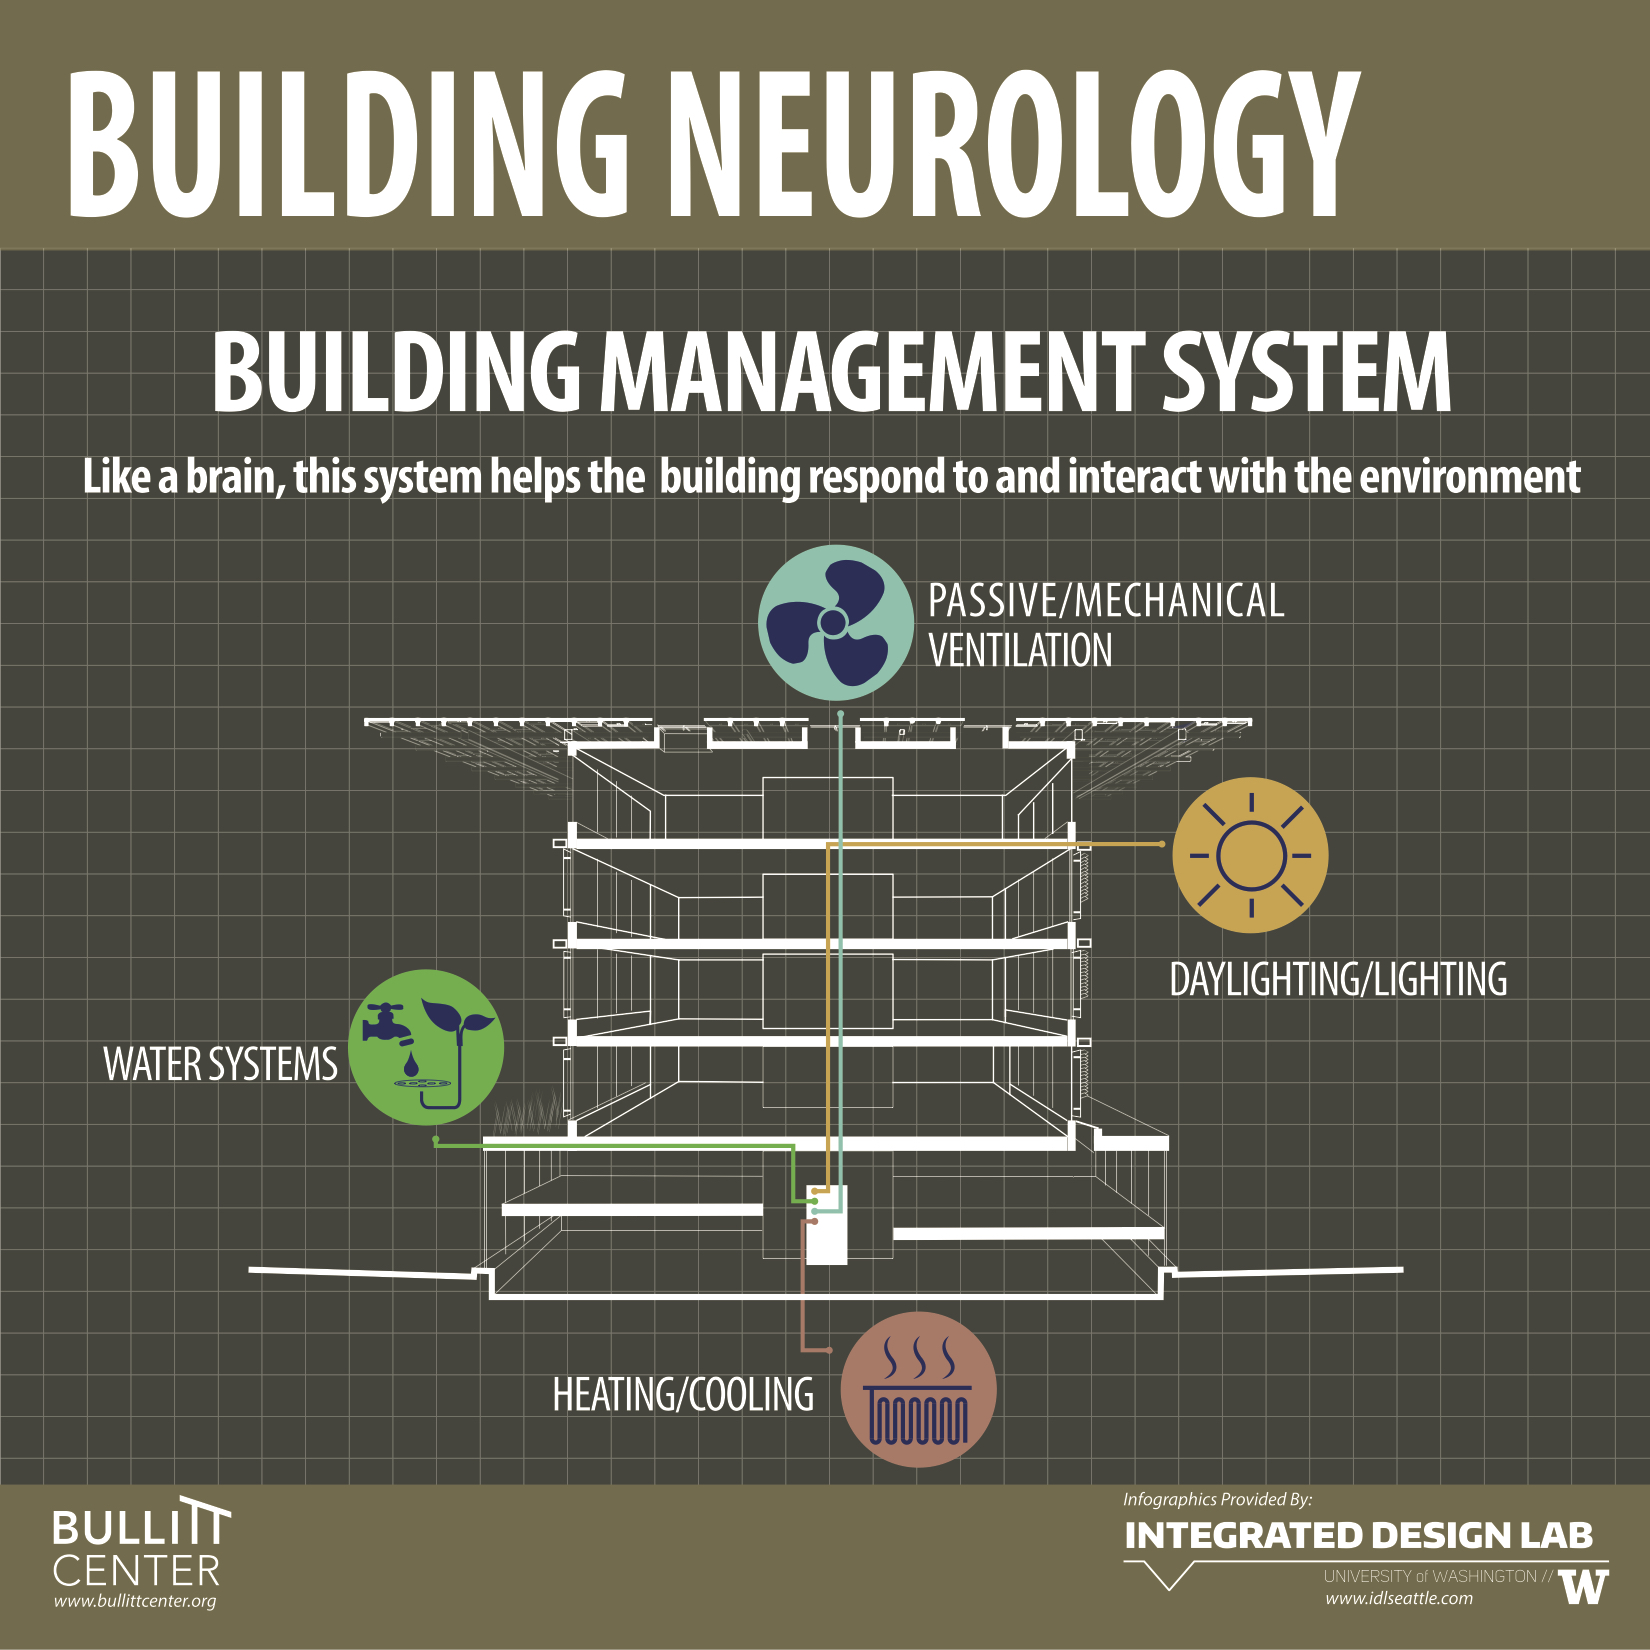 Building Neurology Bullitt Center